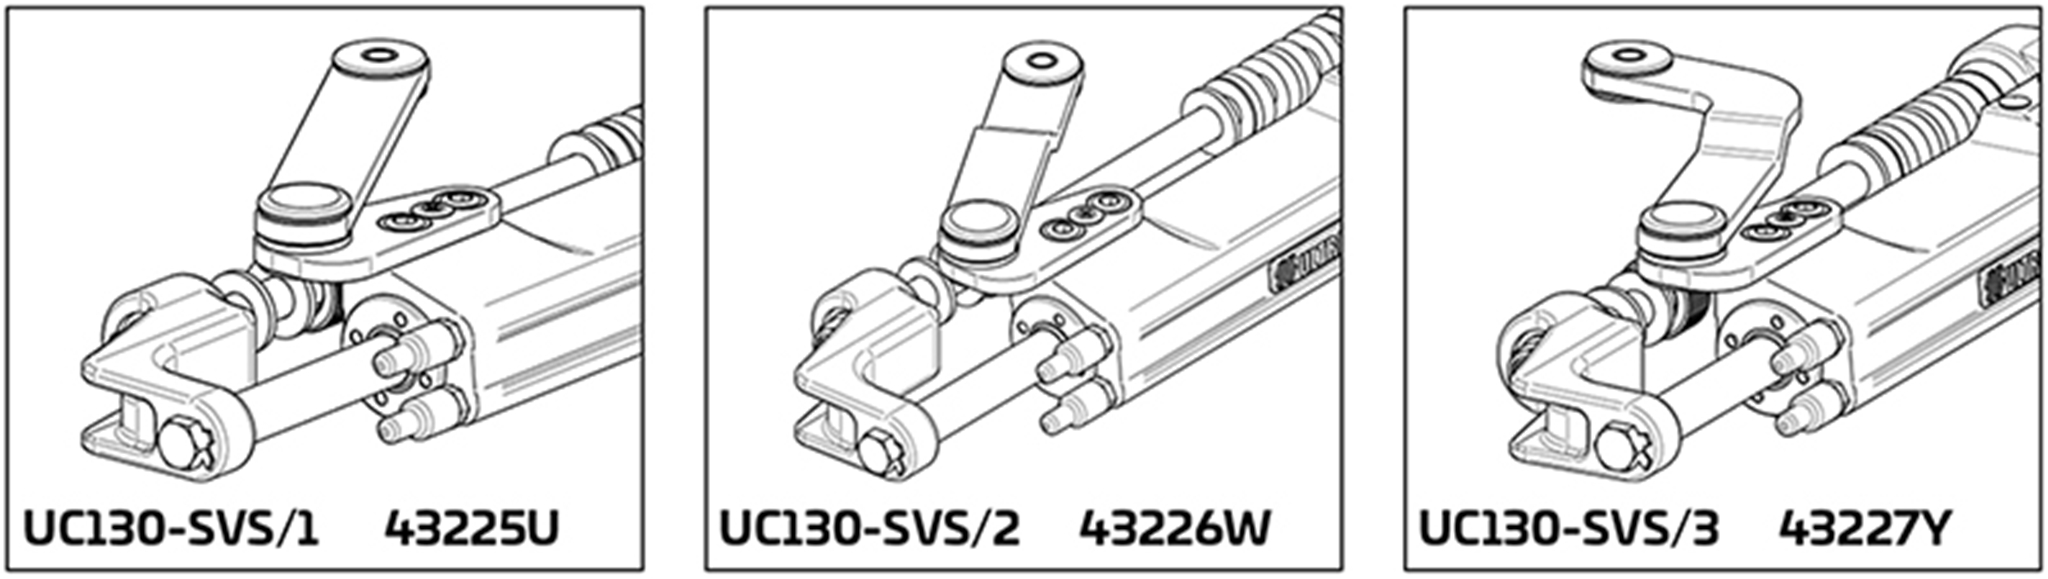 UC130 SVS Hydraulic Cylinder Applications 1, 2 and 3